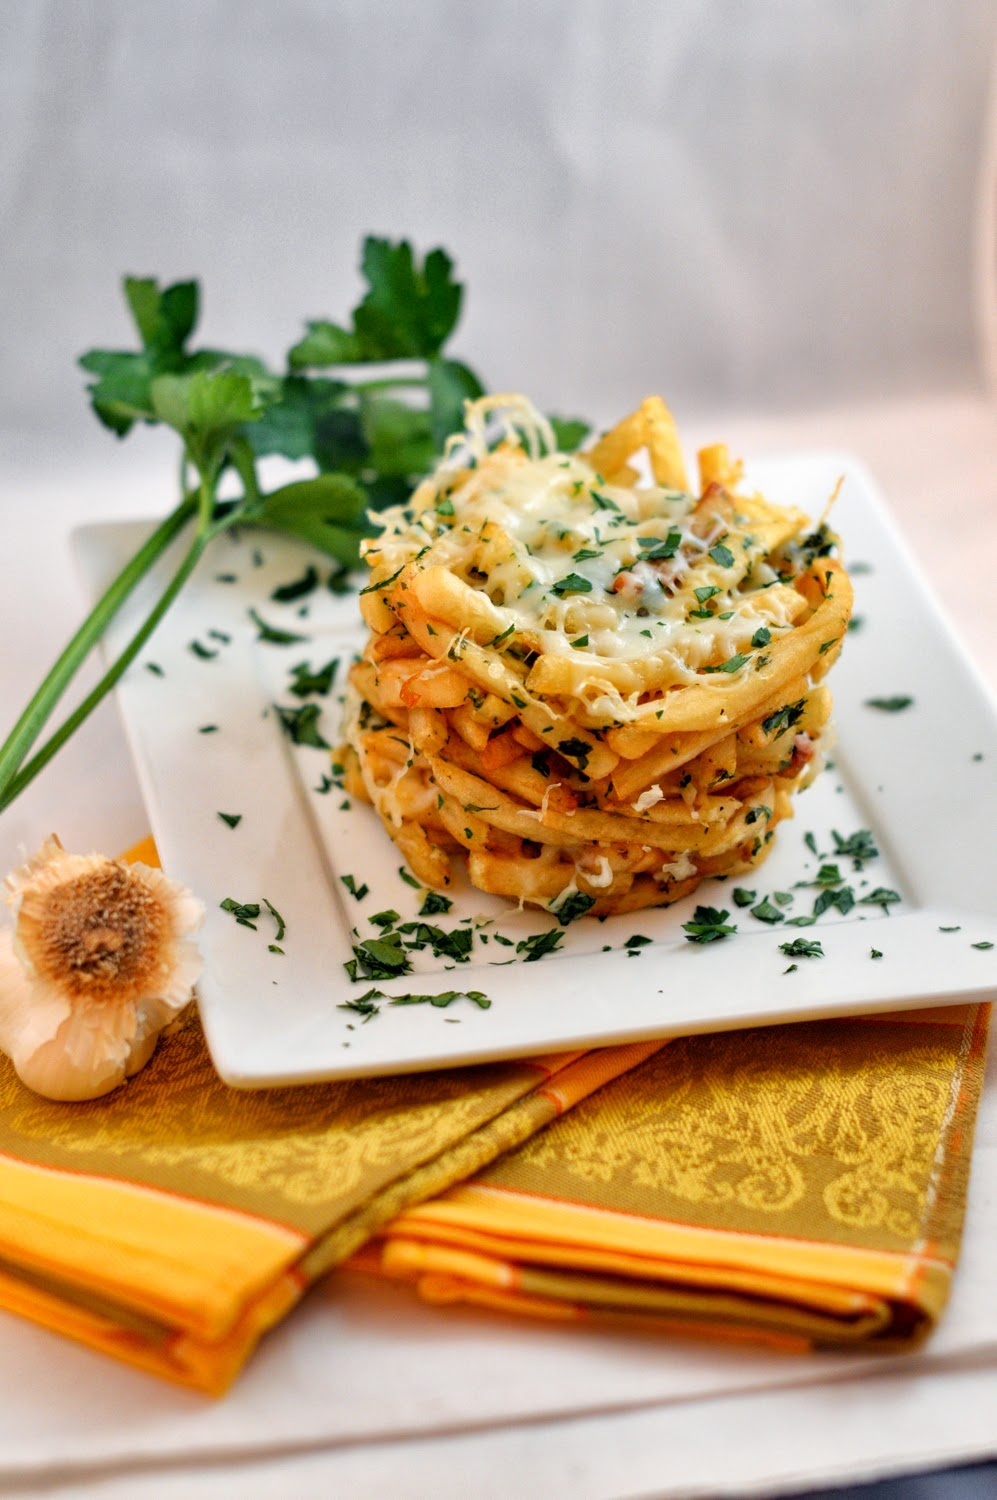 Garlic Parsley French Fry Tower | Savory Experiments